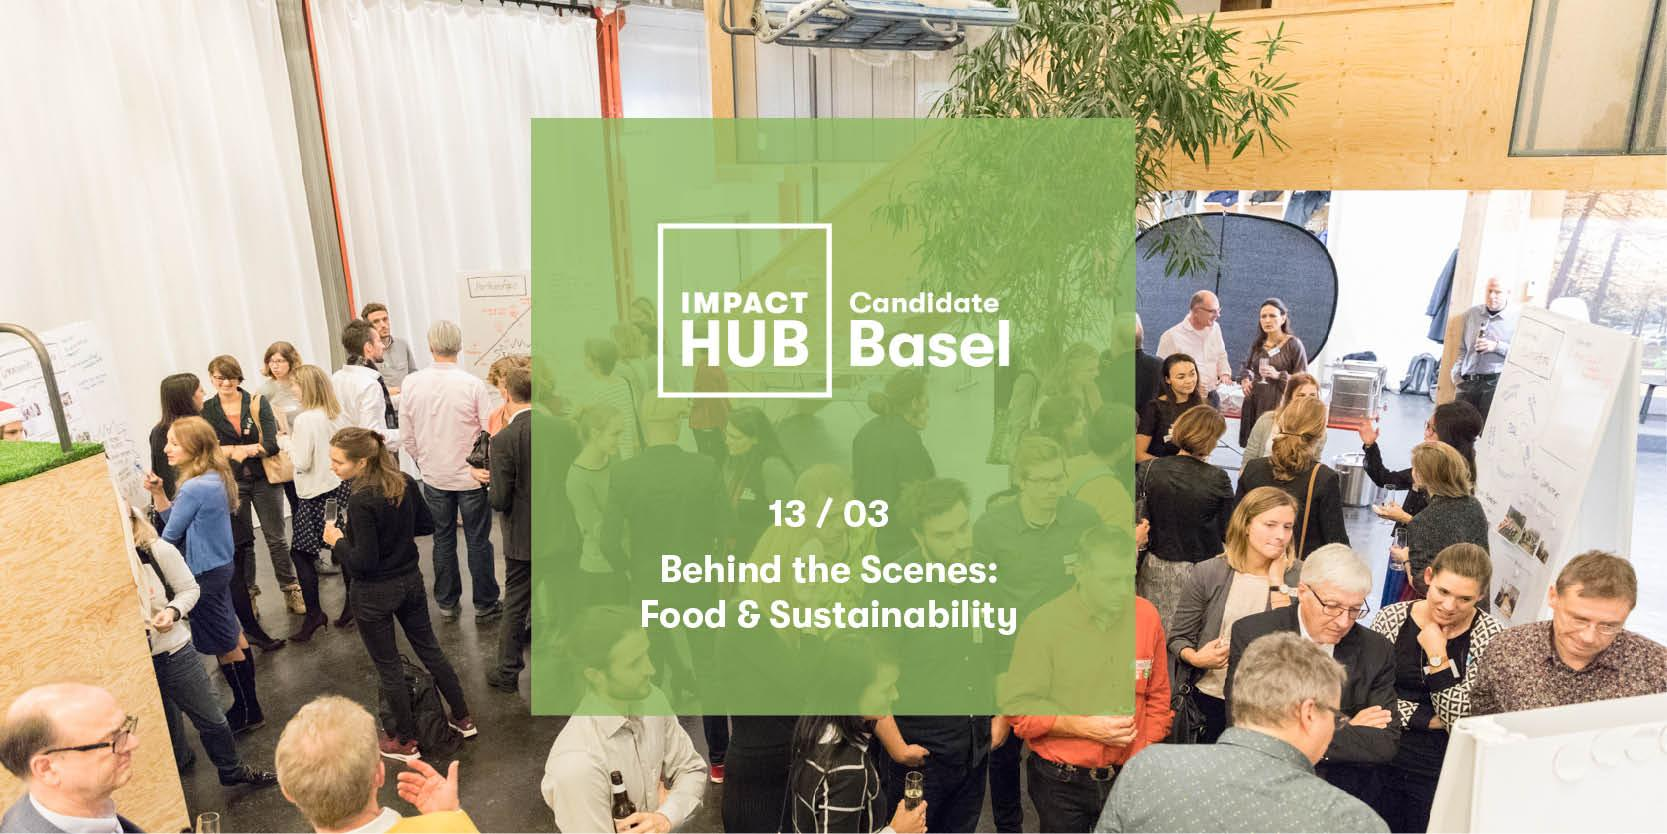 Behind the Scenes: Food & Sustainability